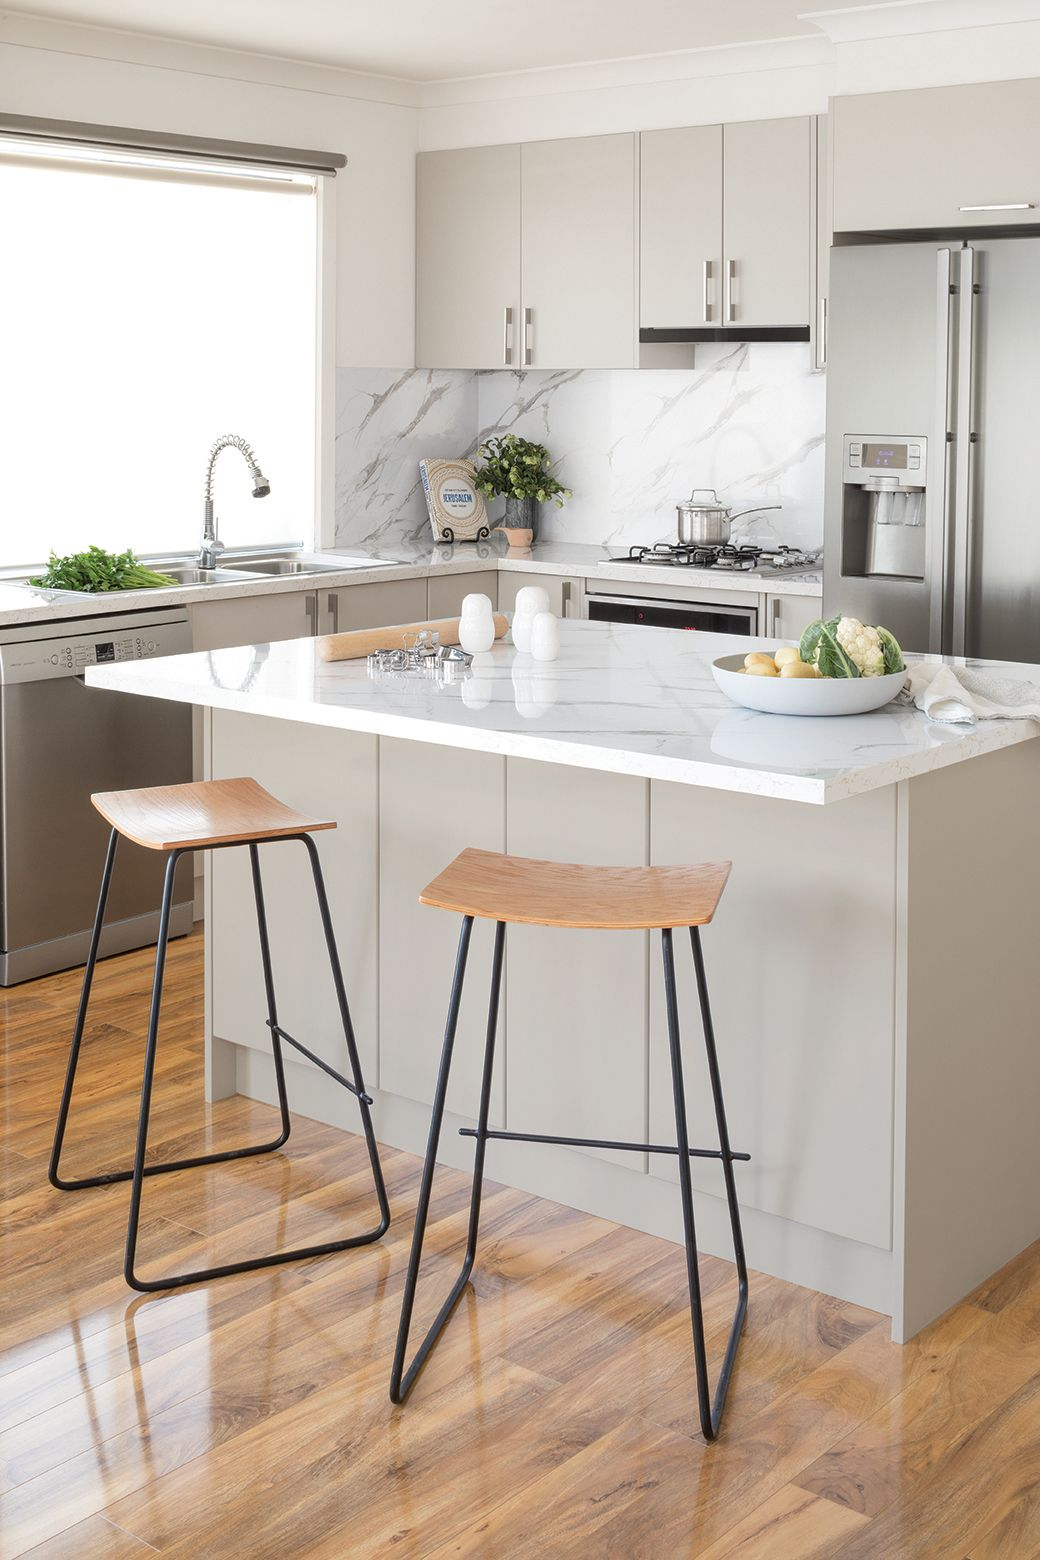 Function meets classic style with this kaboodle kitchen design ...